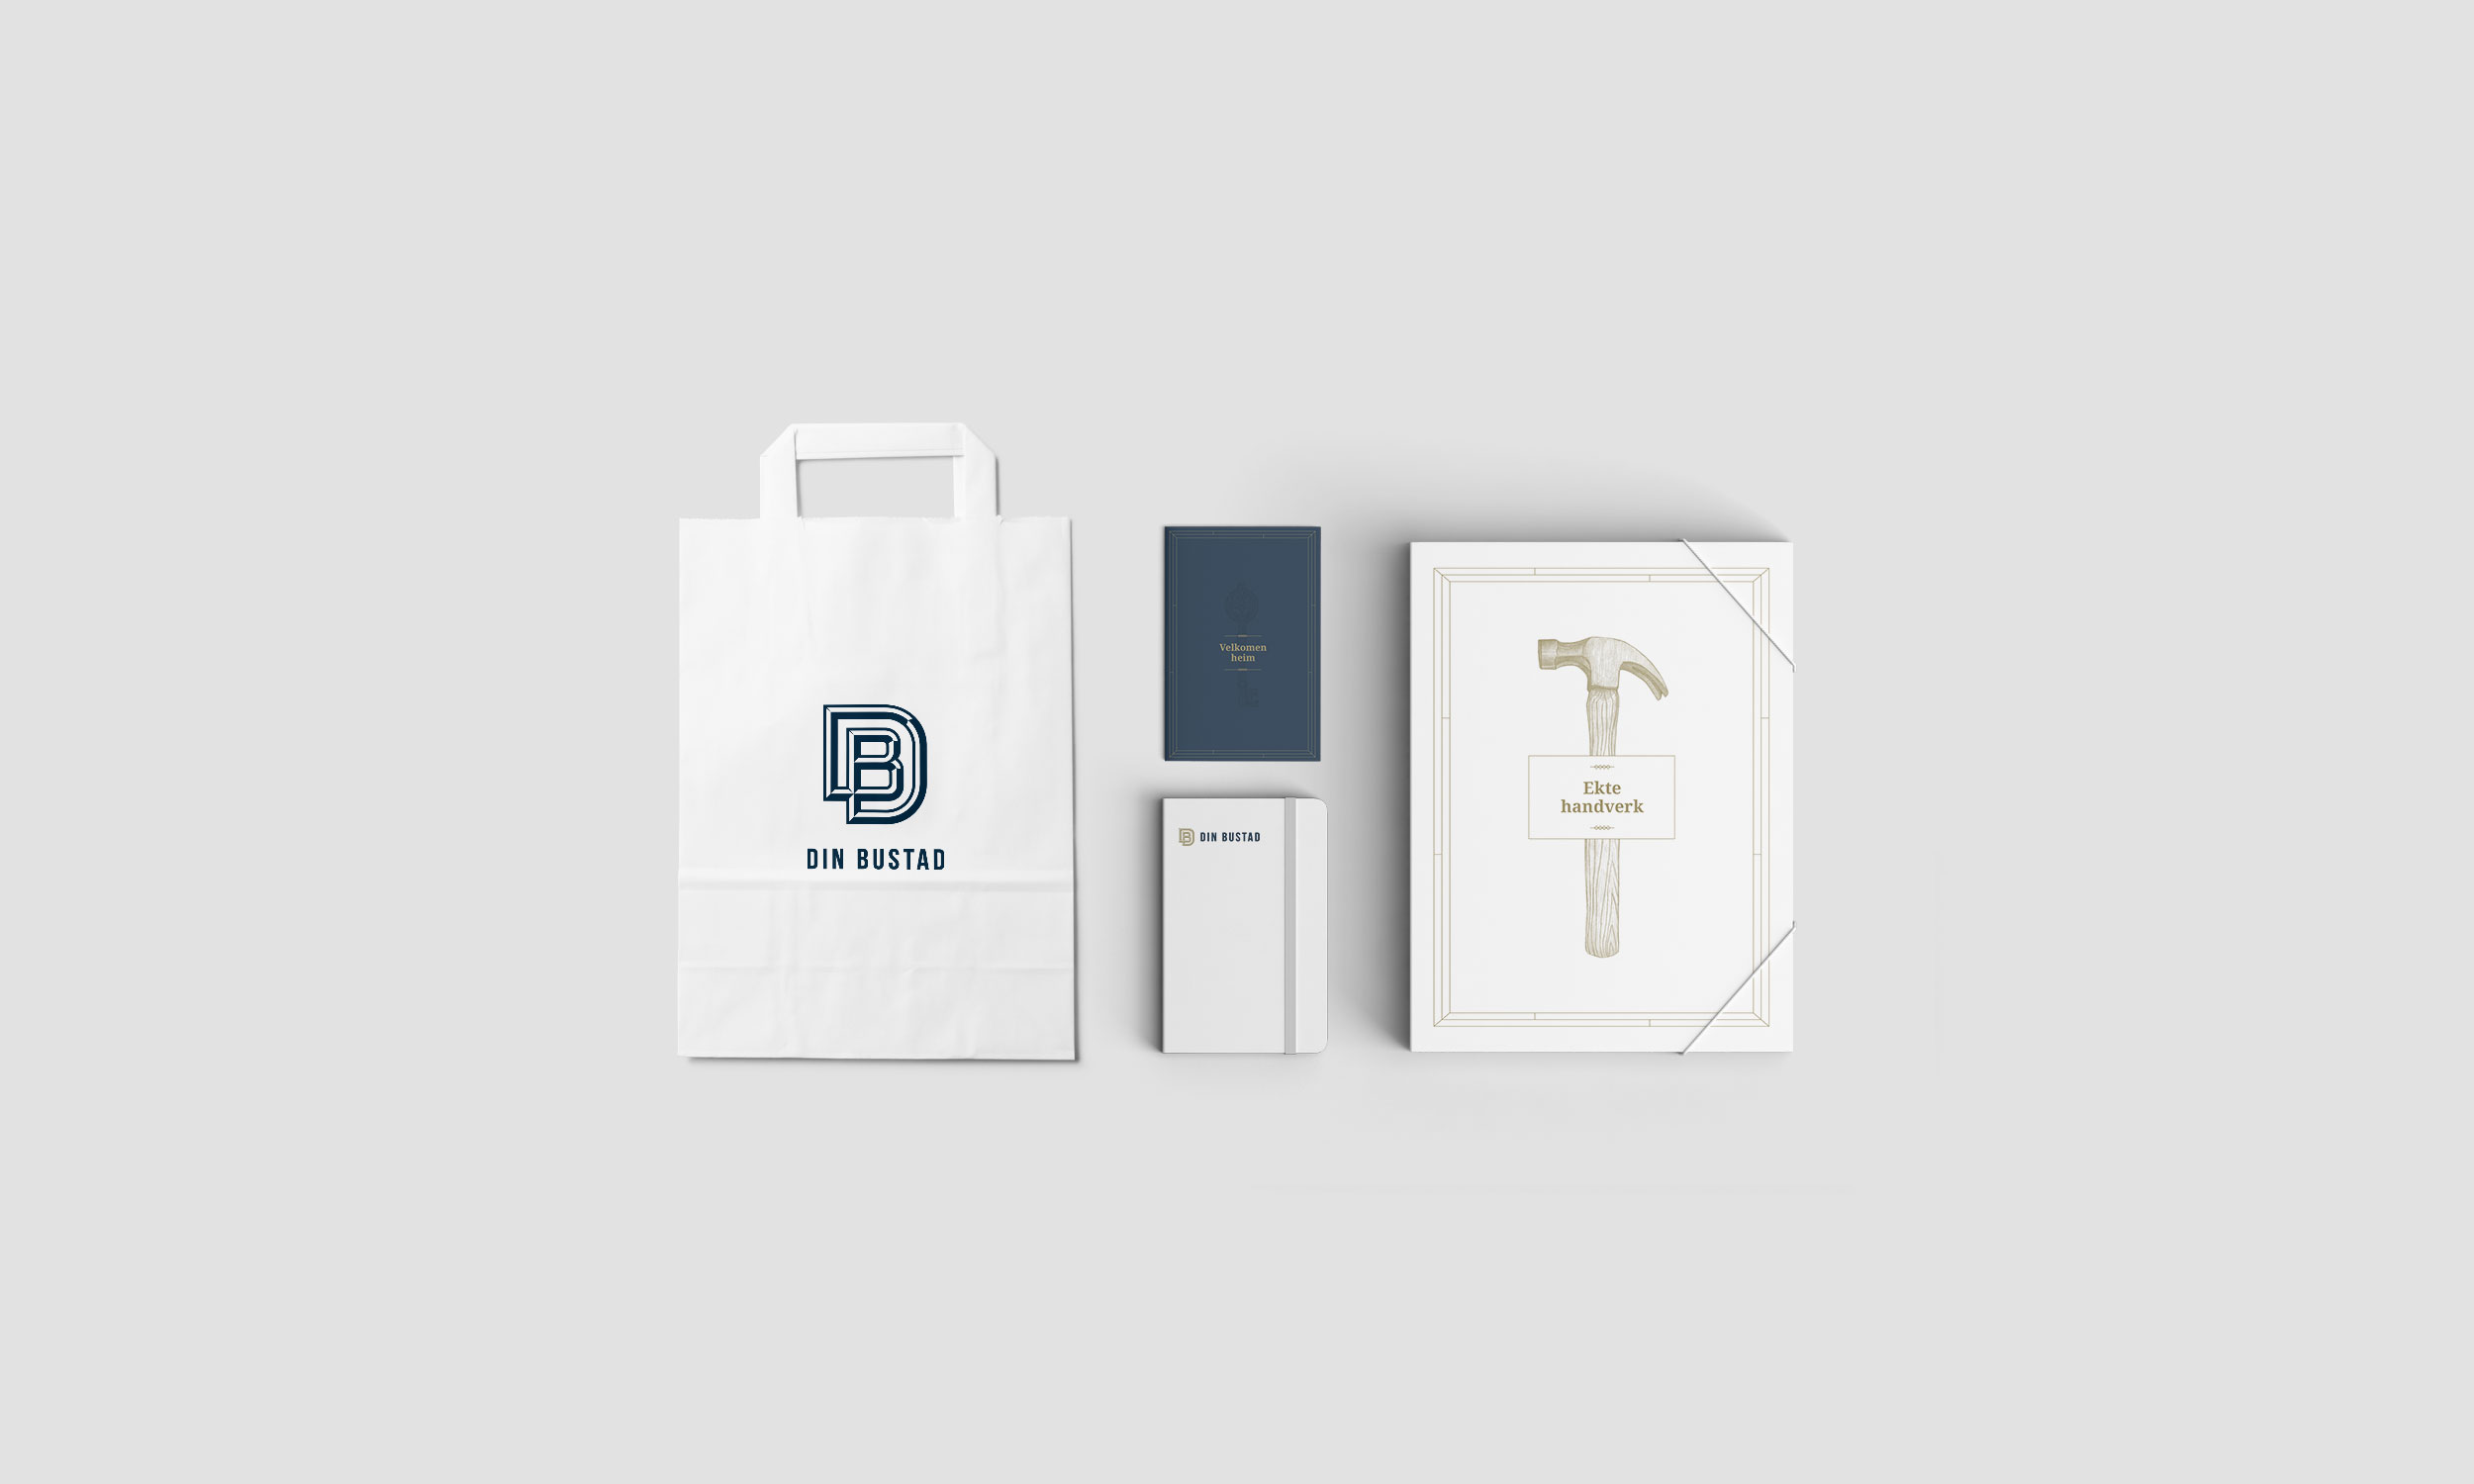 Din Bustad Brand element, designed by SBDS